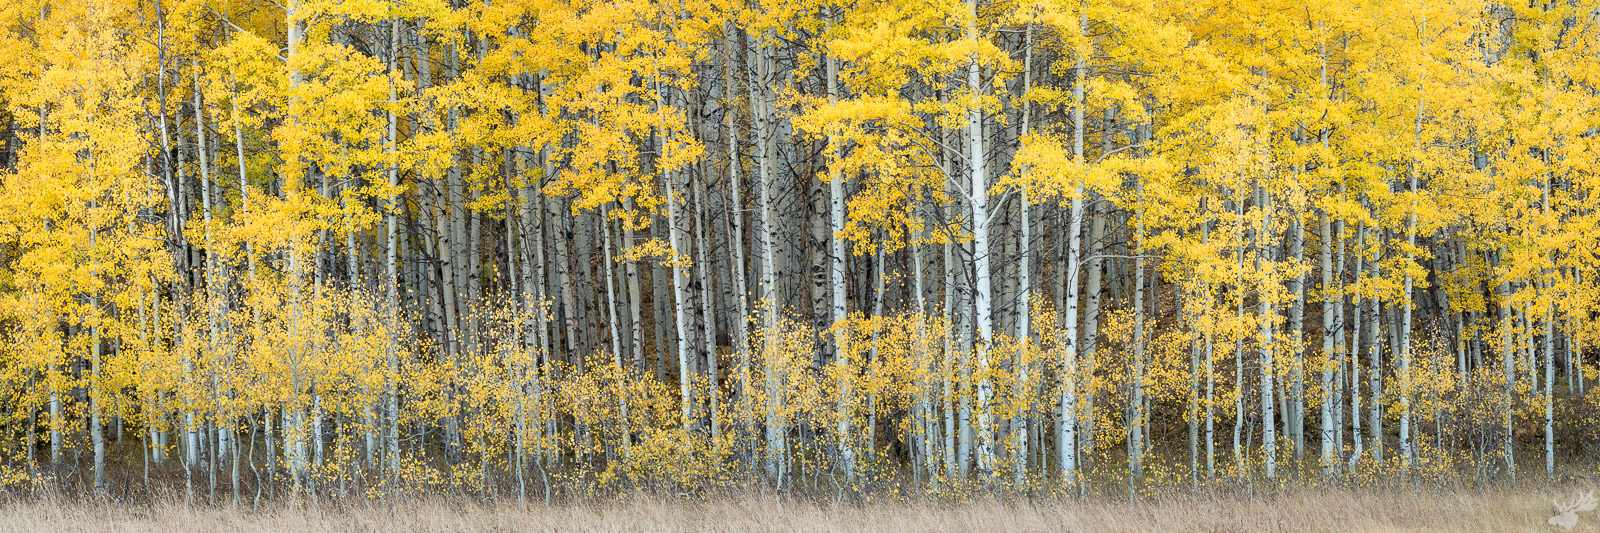 autumn, fall color, foliage, american west, photo